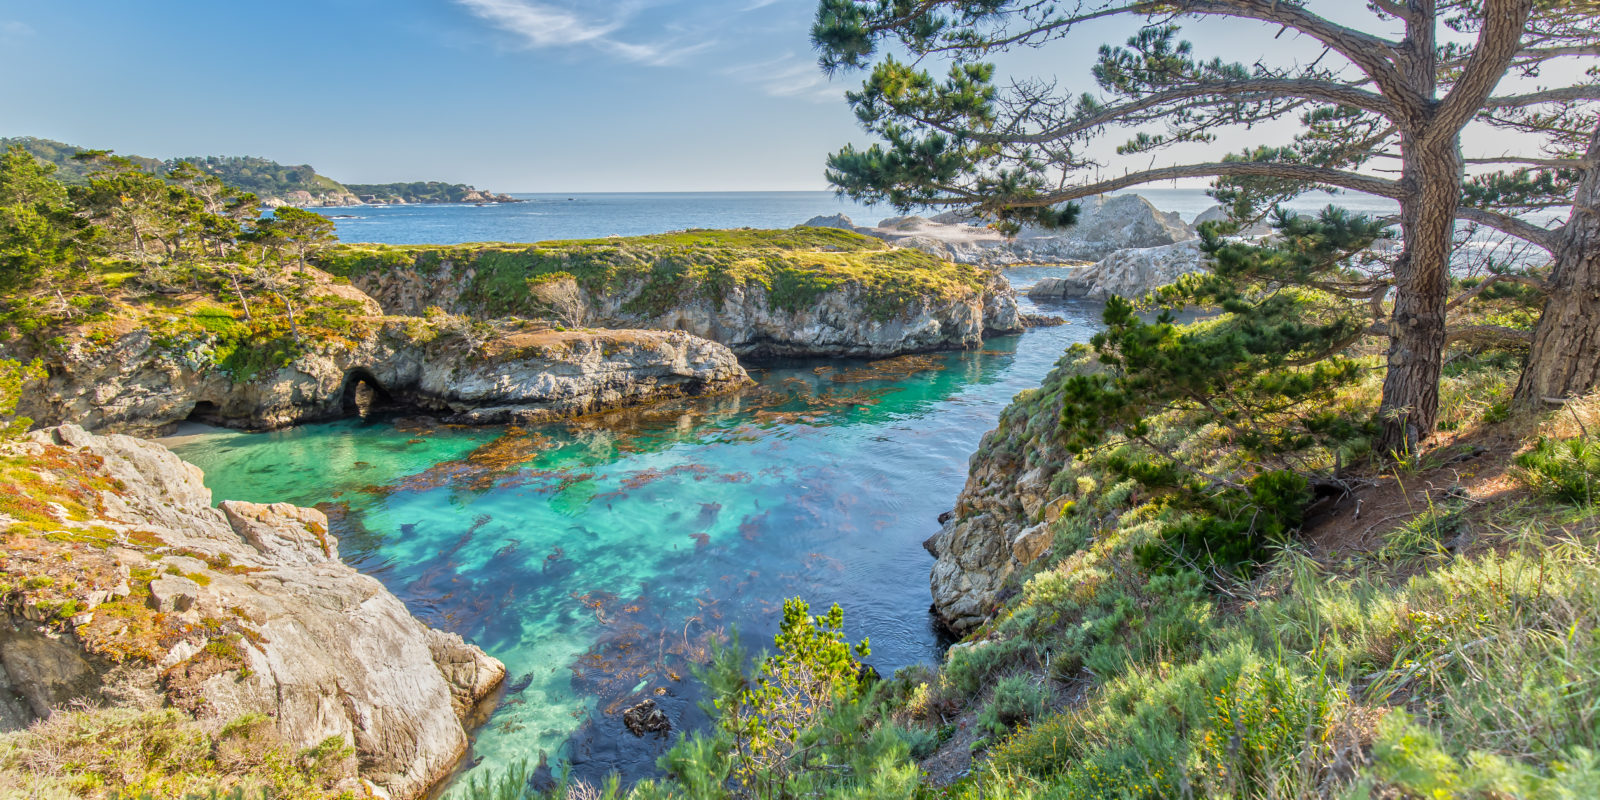 Day Trip from San Francisco: Visiting Point Lobos State Reserve